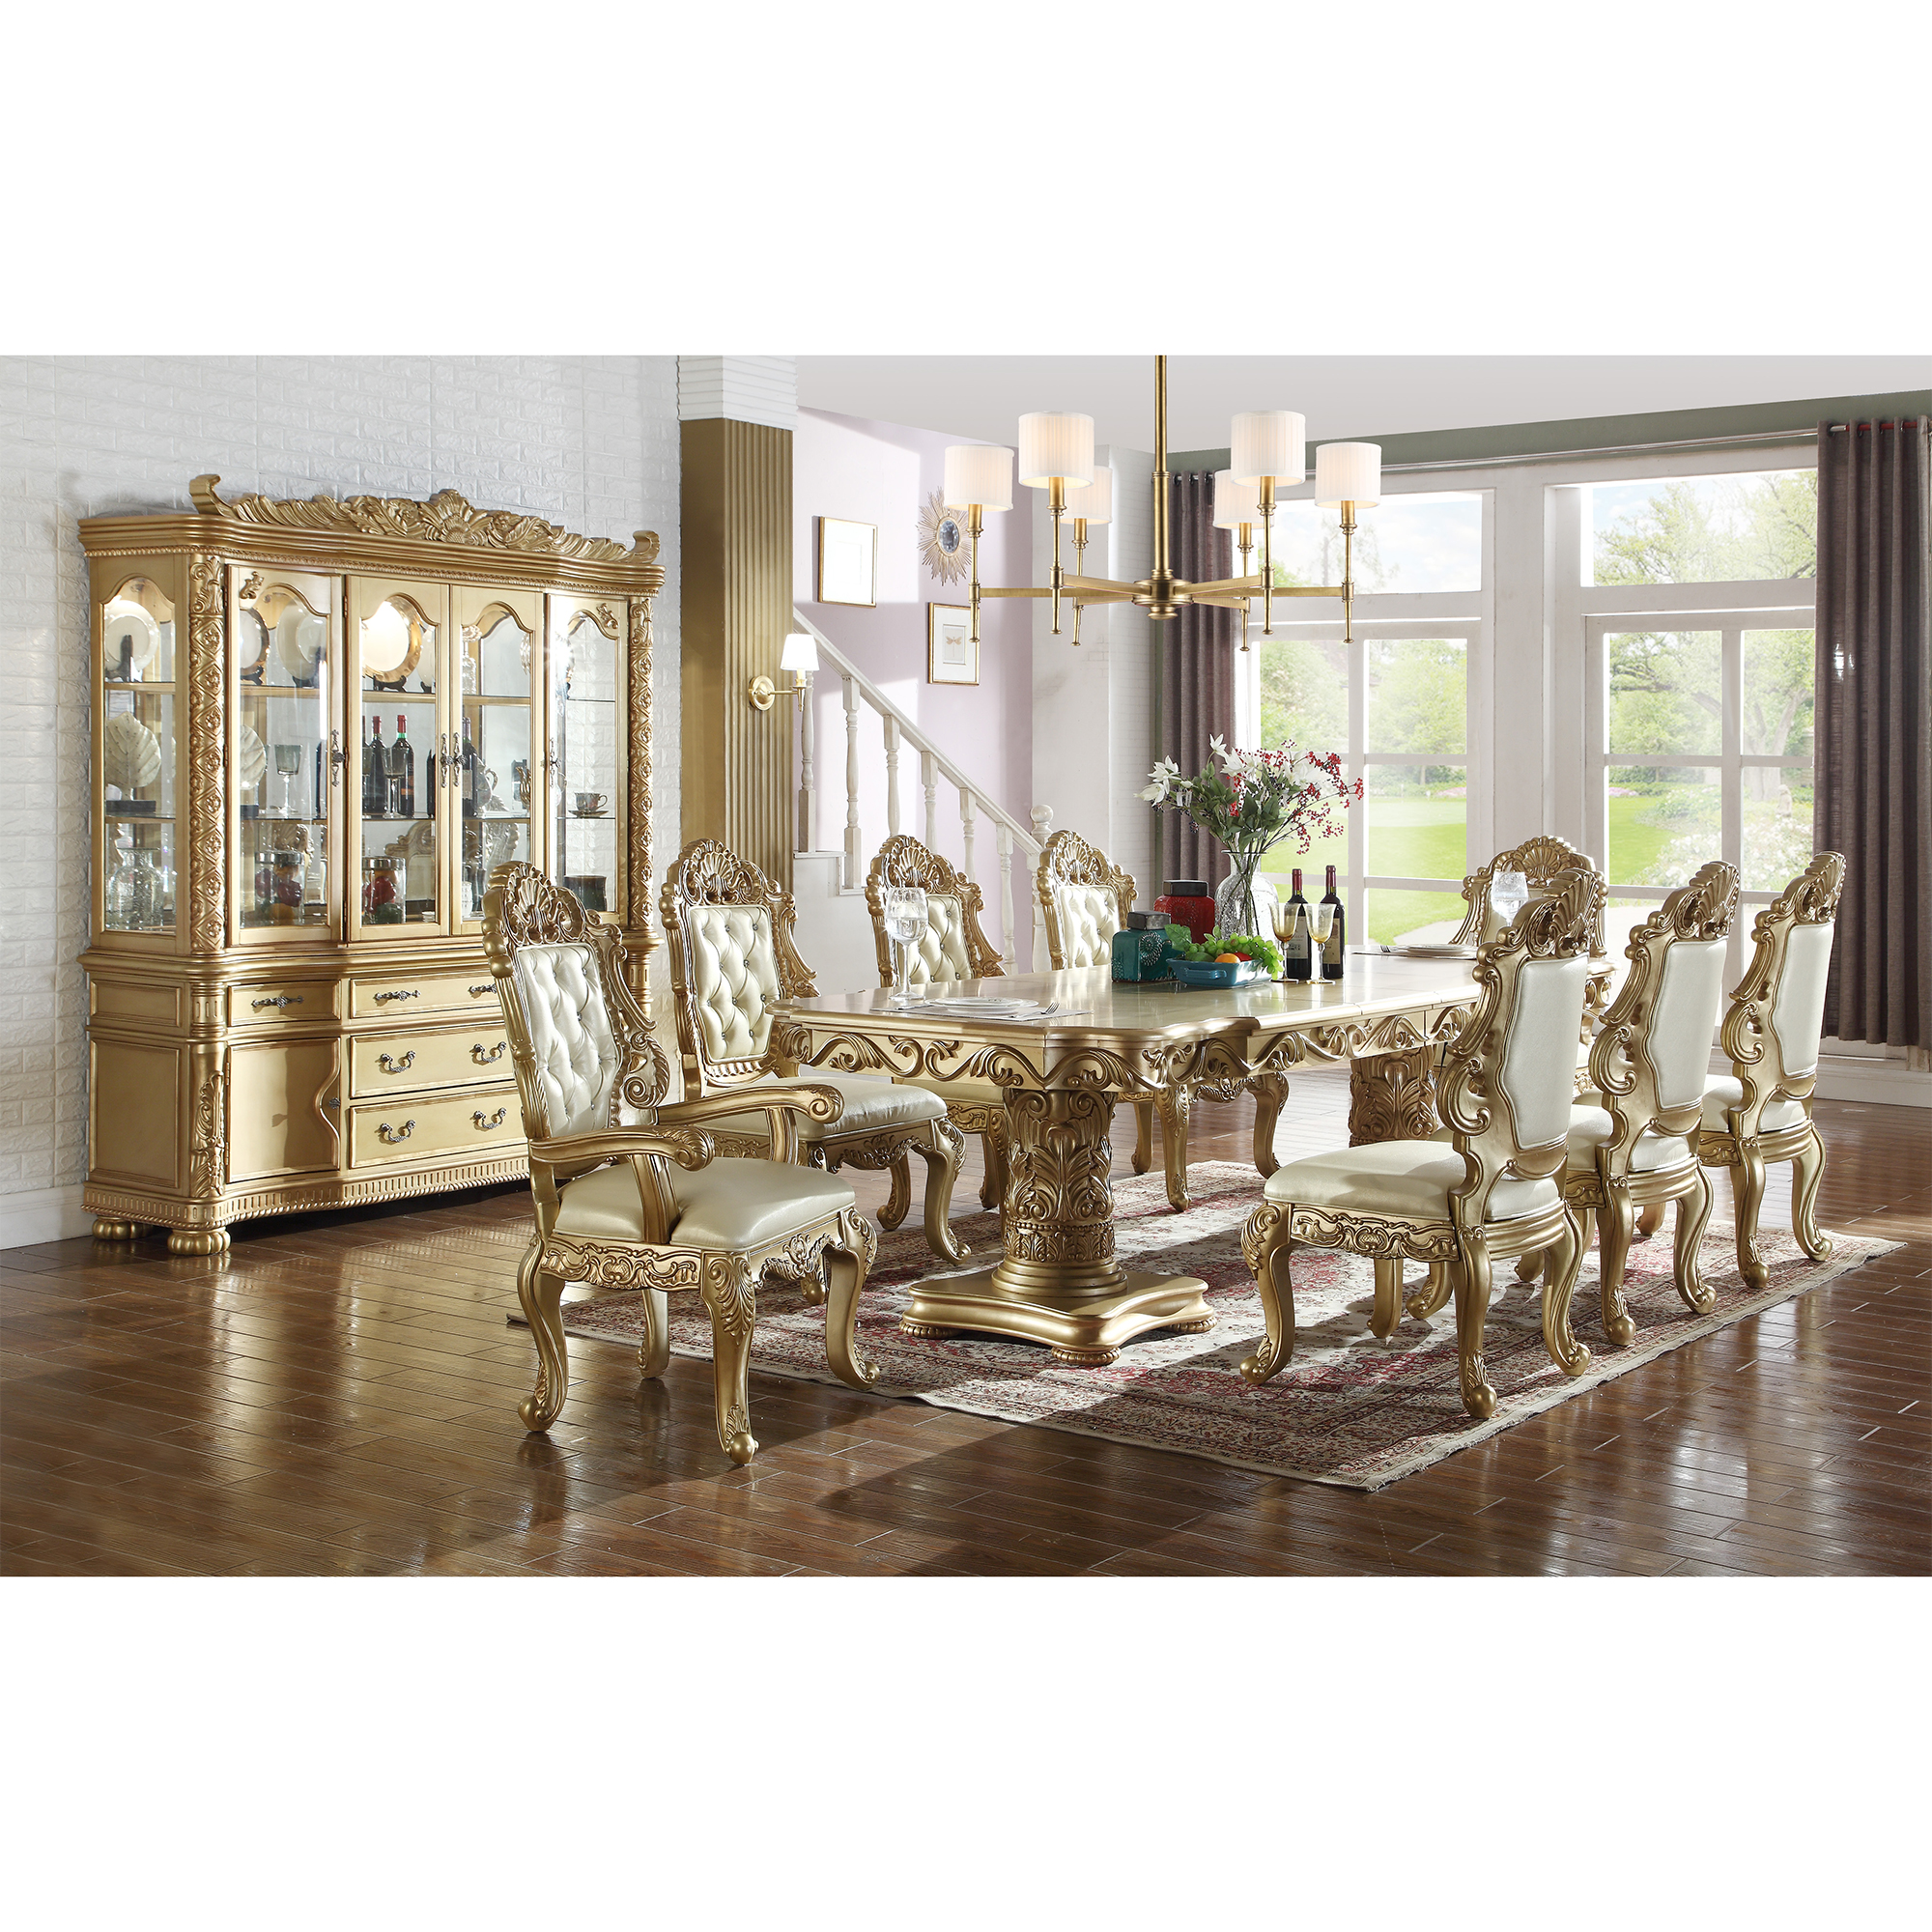 meridian furniture 703-10pc-set bennito 10 piece dining set in